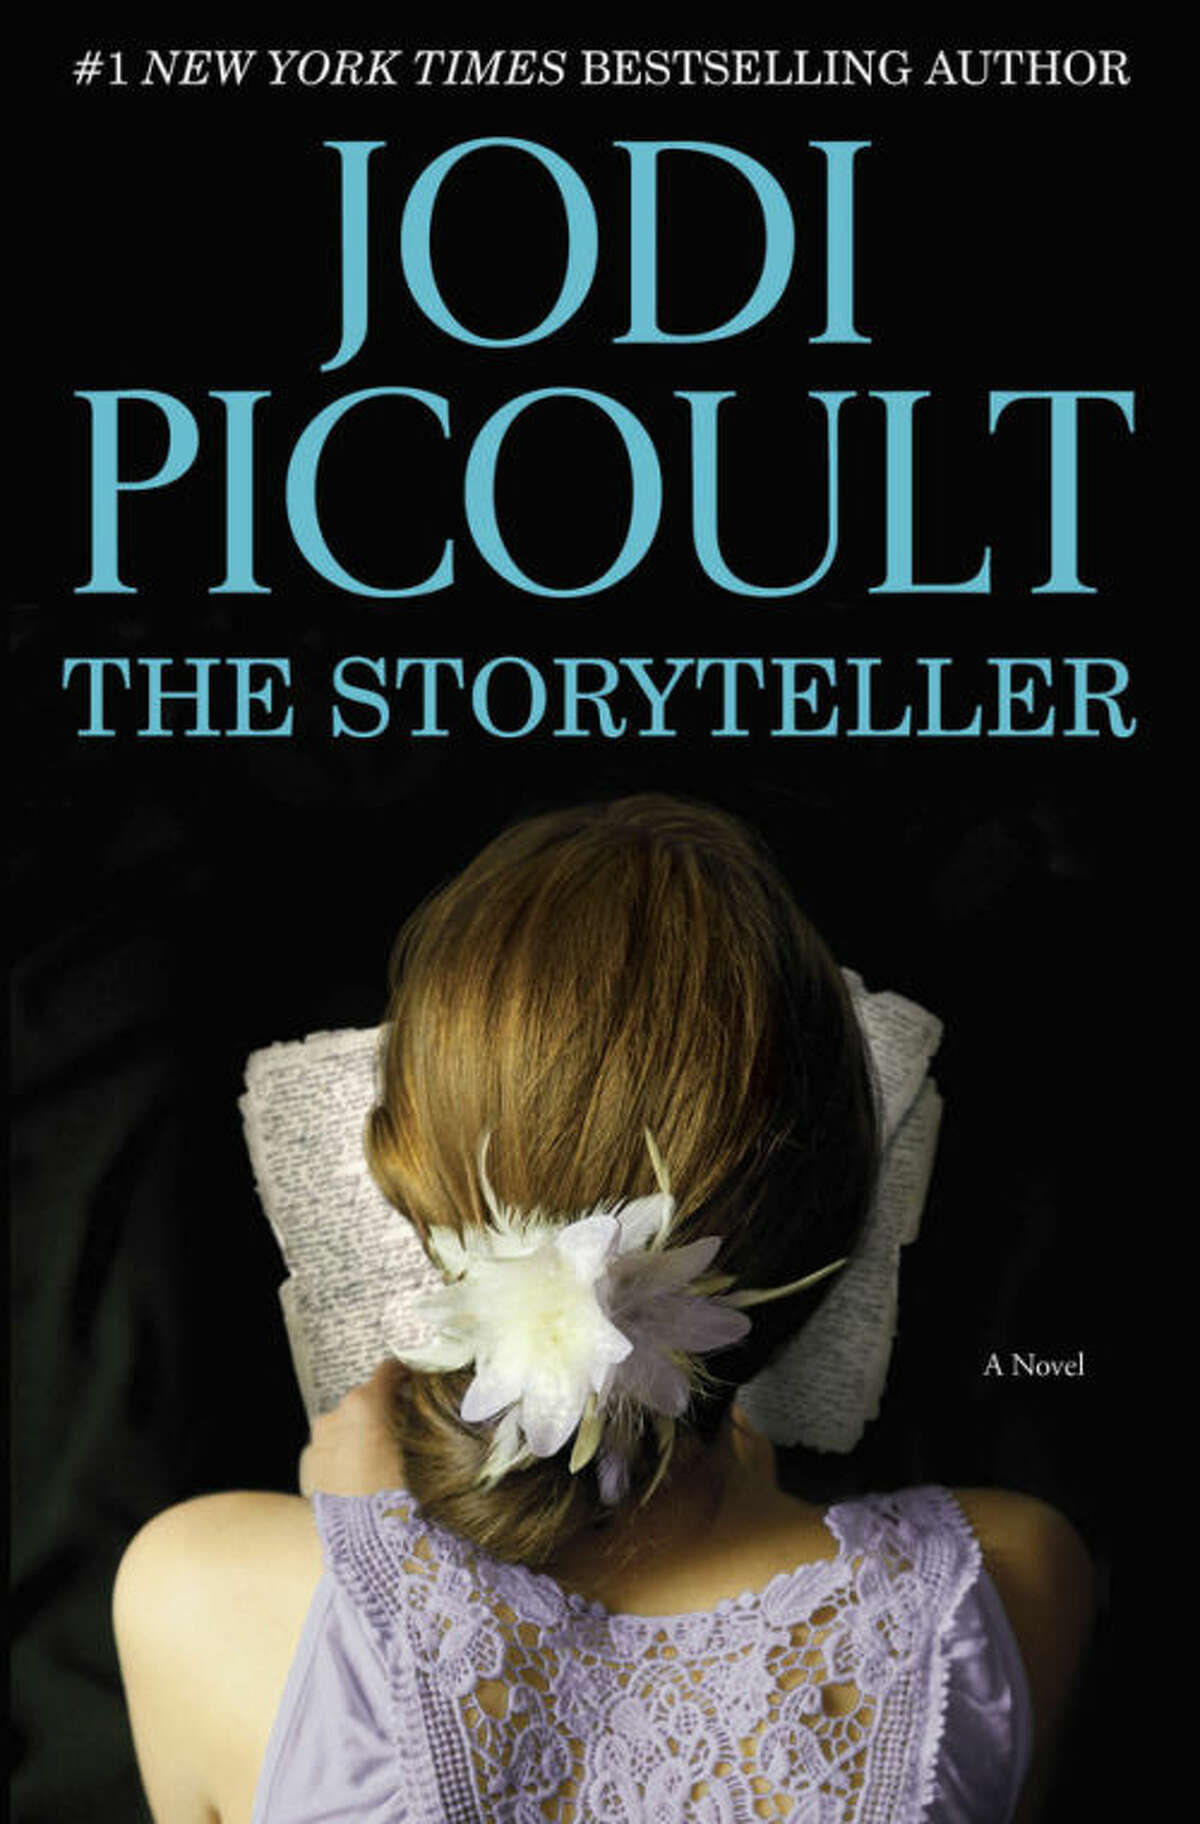 """This book cover image released by Atria shows """"The Storyteller,"""" by Jodi Picoult. (AP Photo/Atria)"""